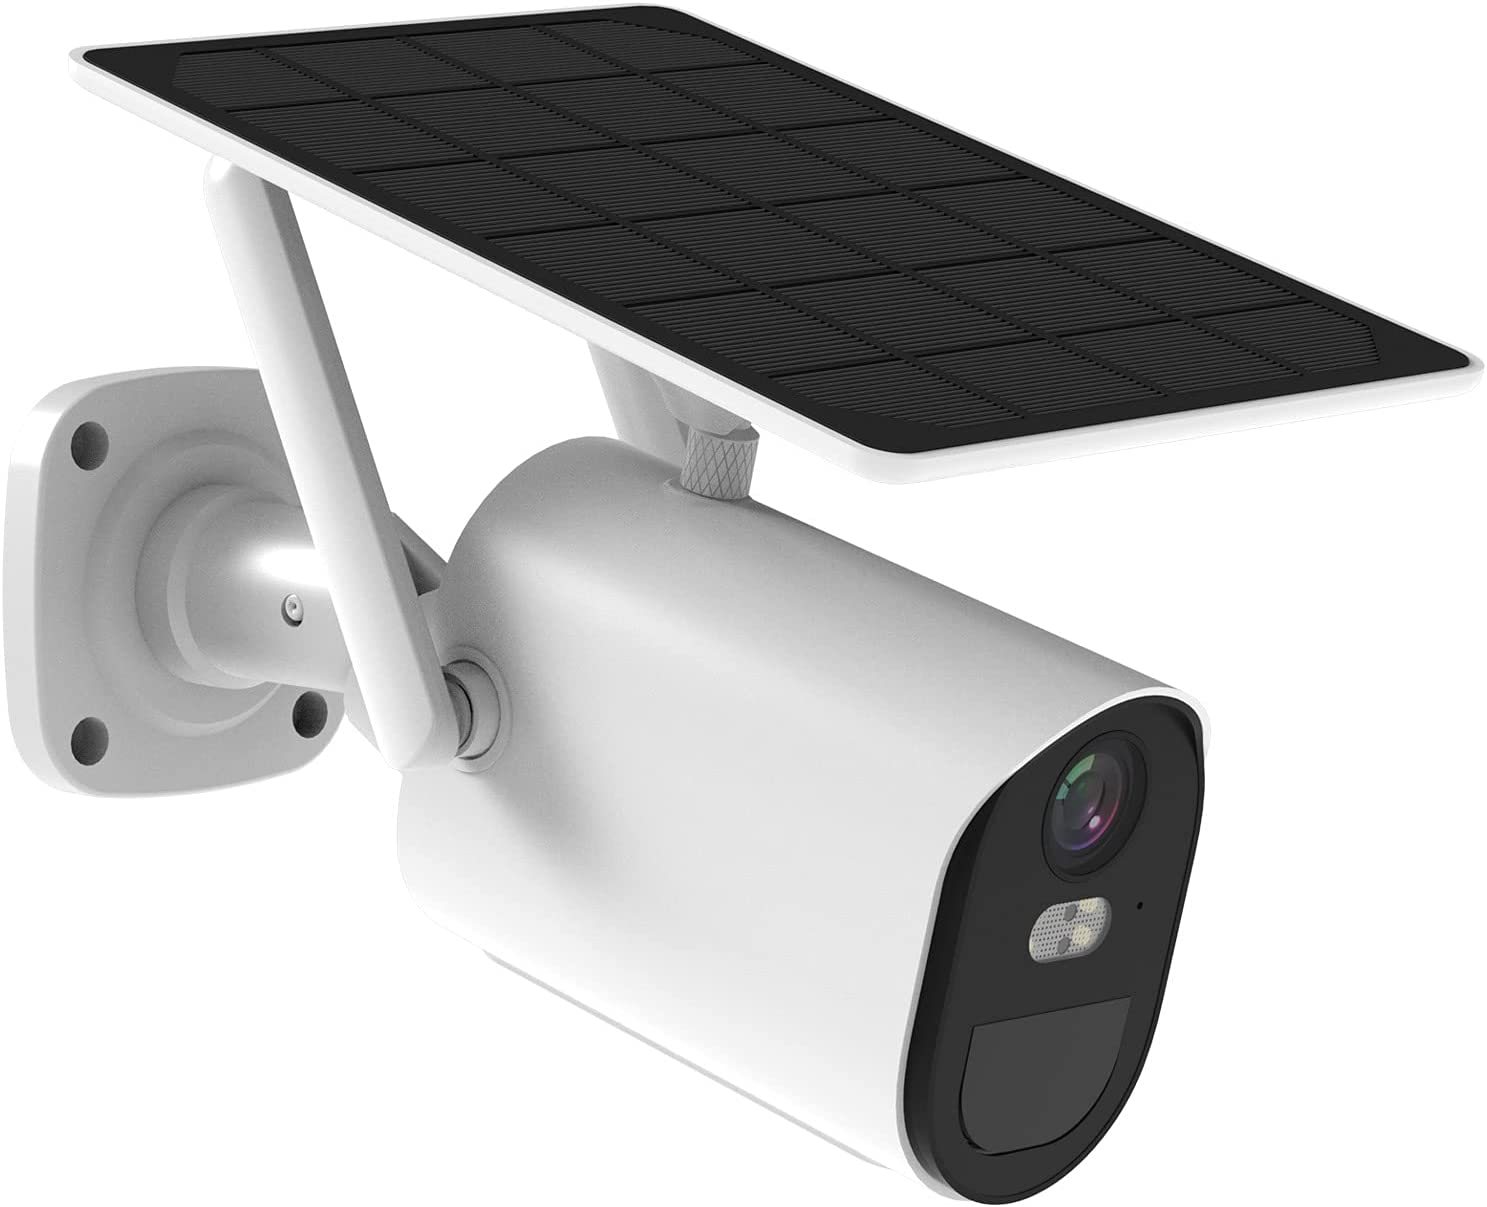 Solar-Security-Camera-Outdoor-Wireless Battery Powered,1080p Home Wifi Security Camera,Spotlight Color Night Vision,Two-Way Talk,Siren Alarm, Motion Detection with schedulable woorking time-Soliom B10